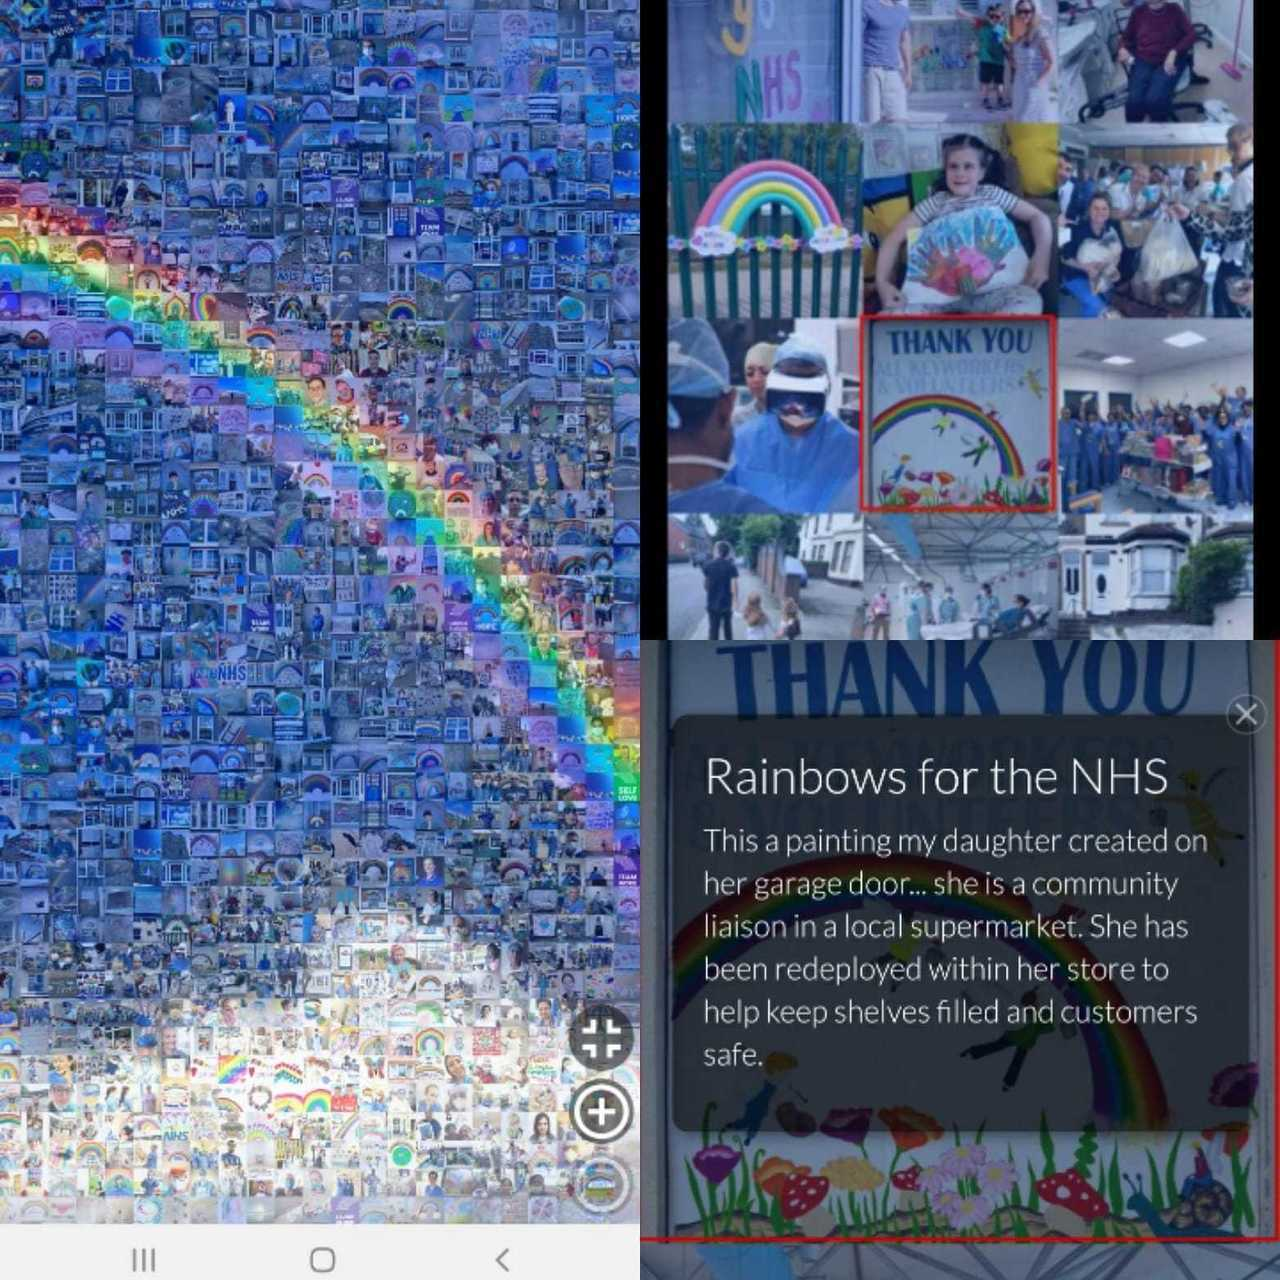 The Peoples Picture - Rainbow for the NHS  | Asda Bromborough